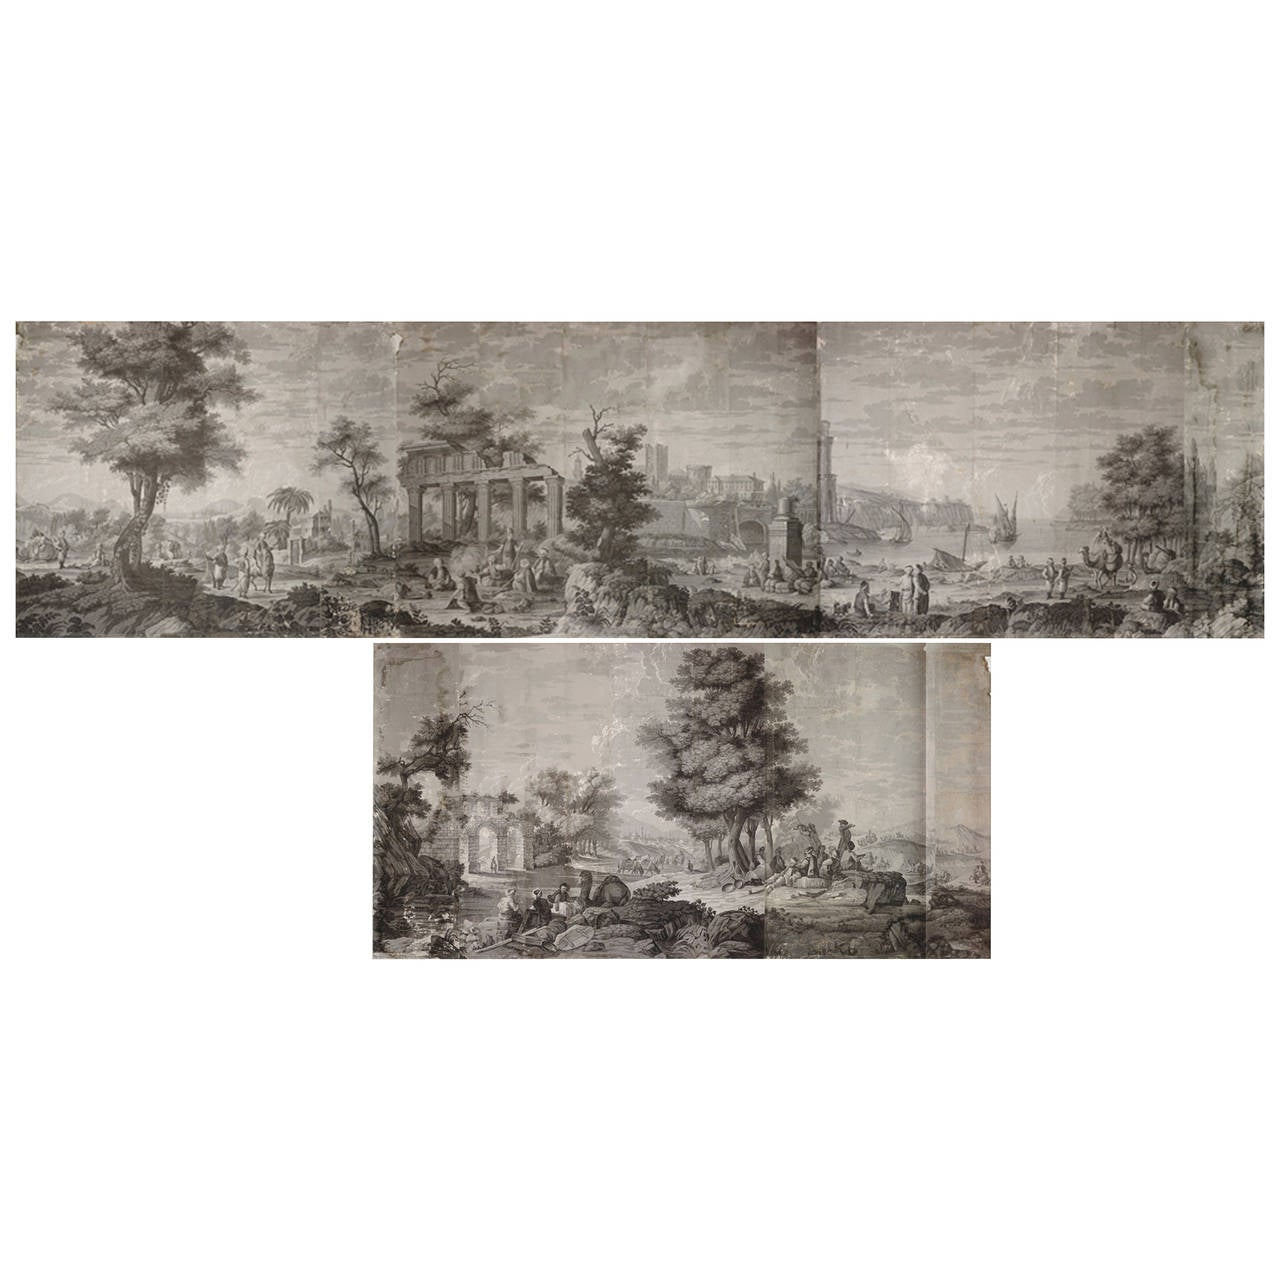 21 Wallpaper Panels, by Joseph Dufour Et Cie, After Comte de Choiseul-Gouffier 1